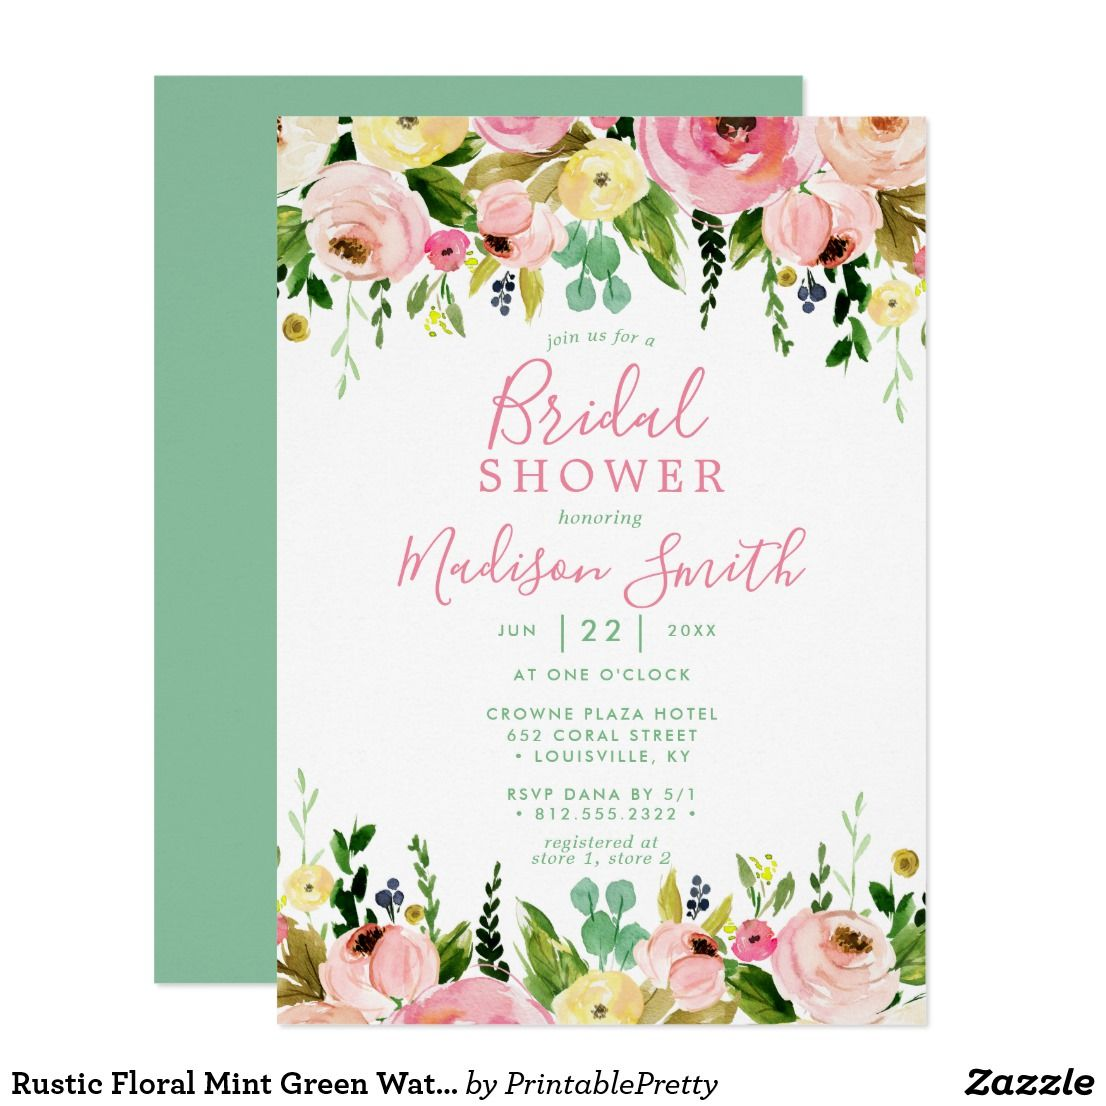 Rustic Floral Mint Green Watercolor Bridal Shower Invitation